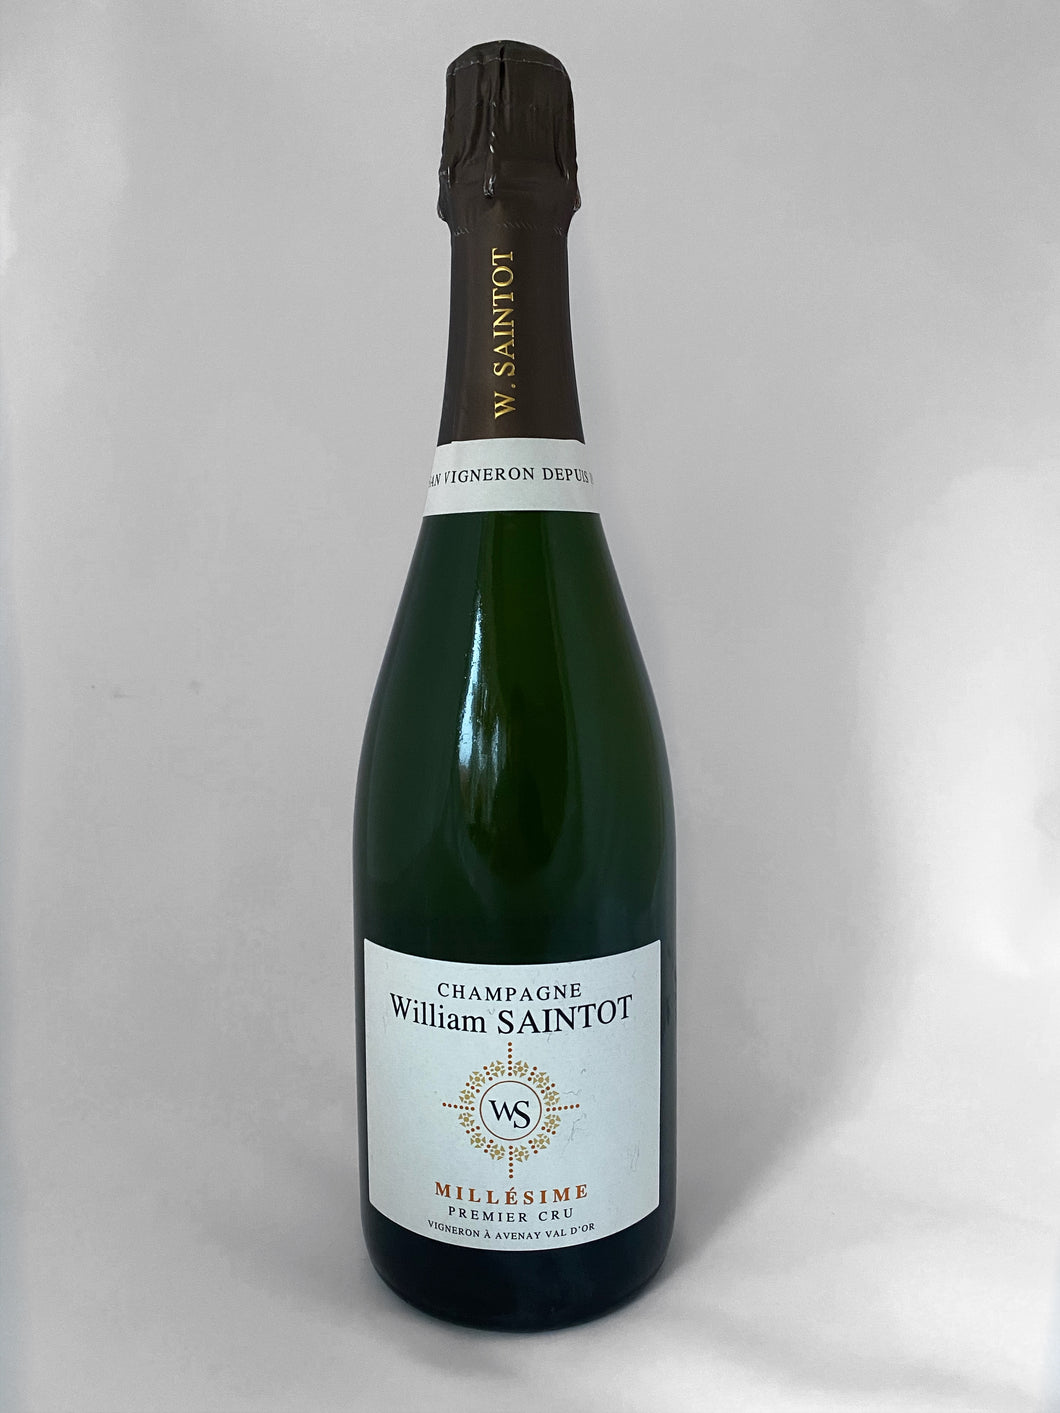 Champagne William Saintot - Millésime 2012